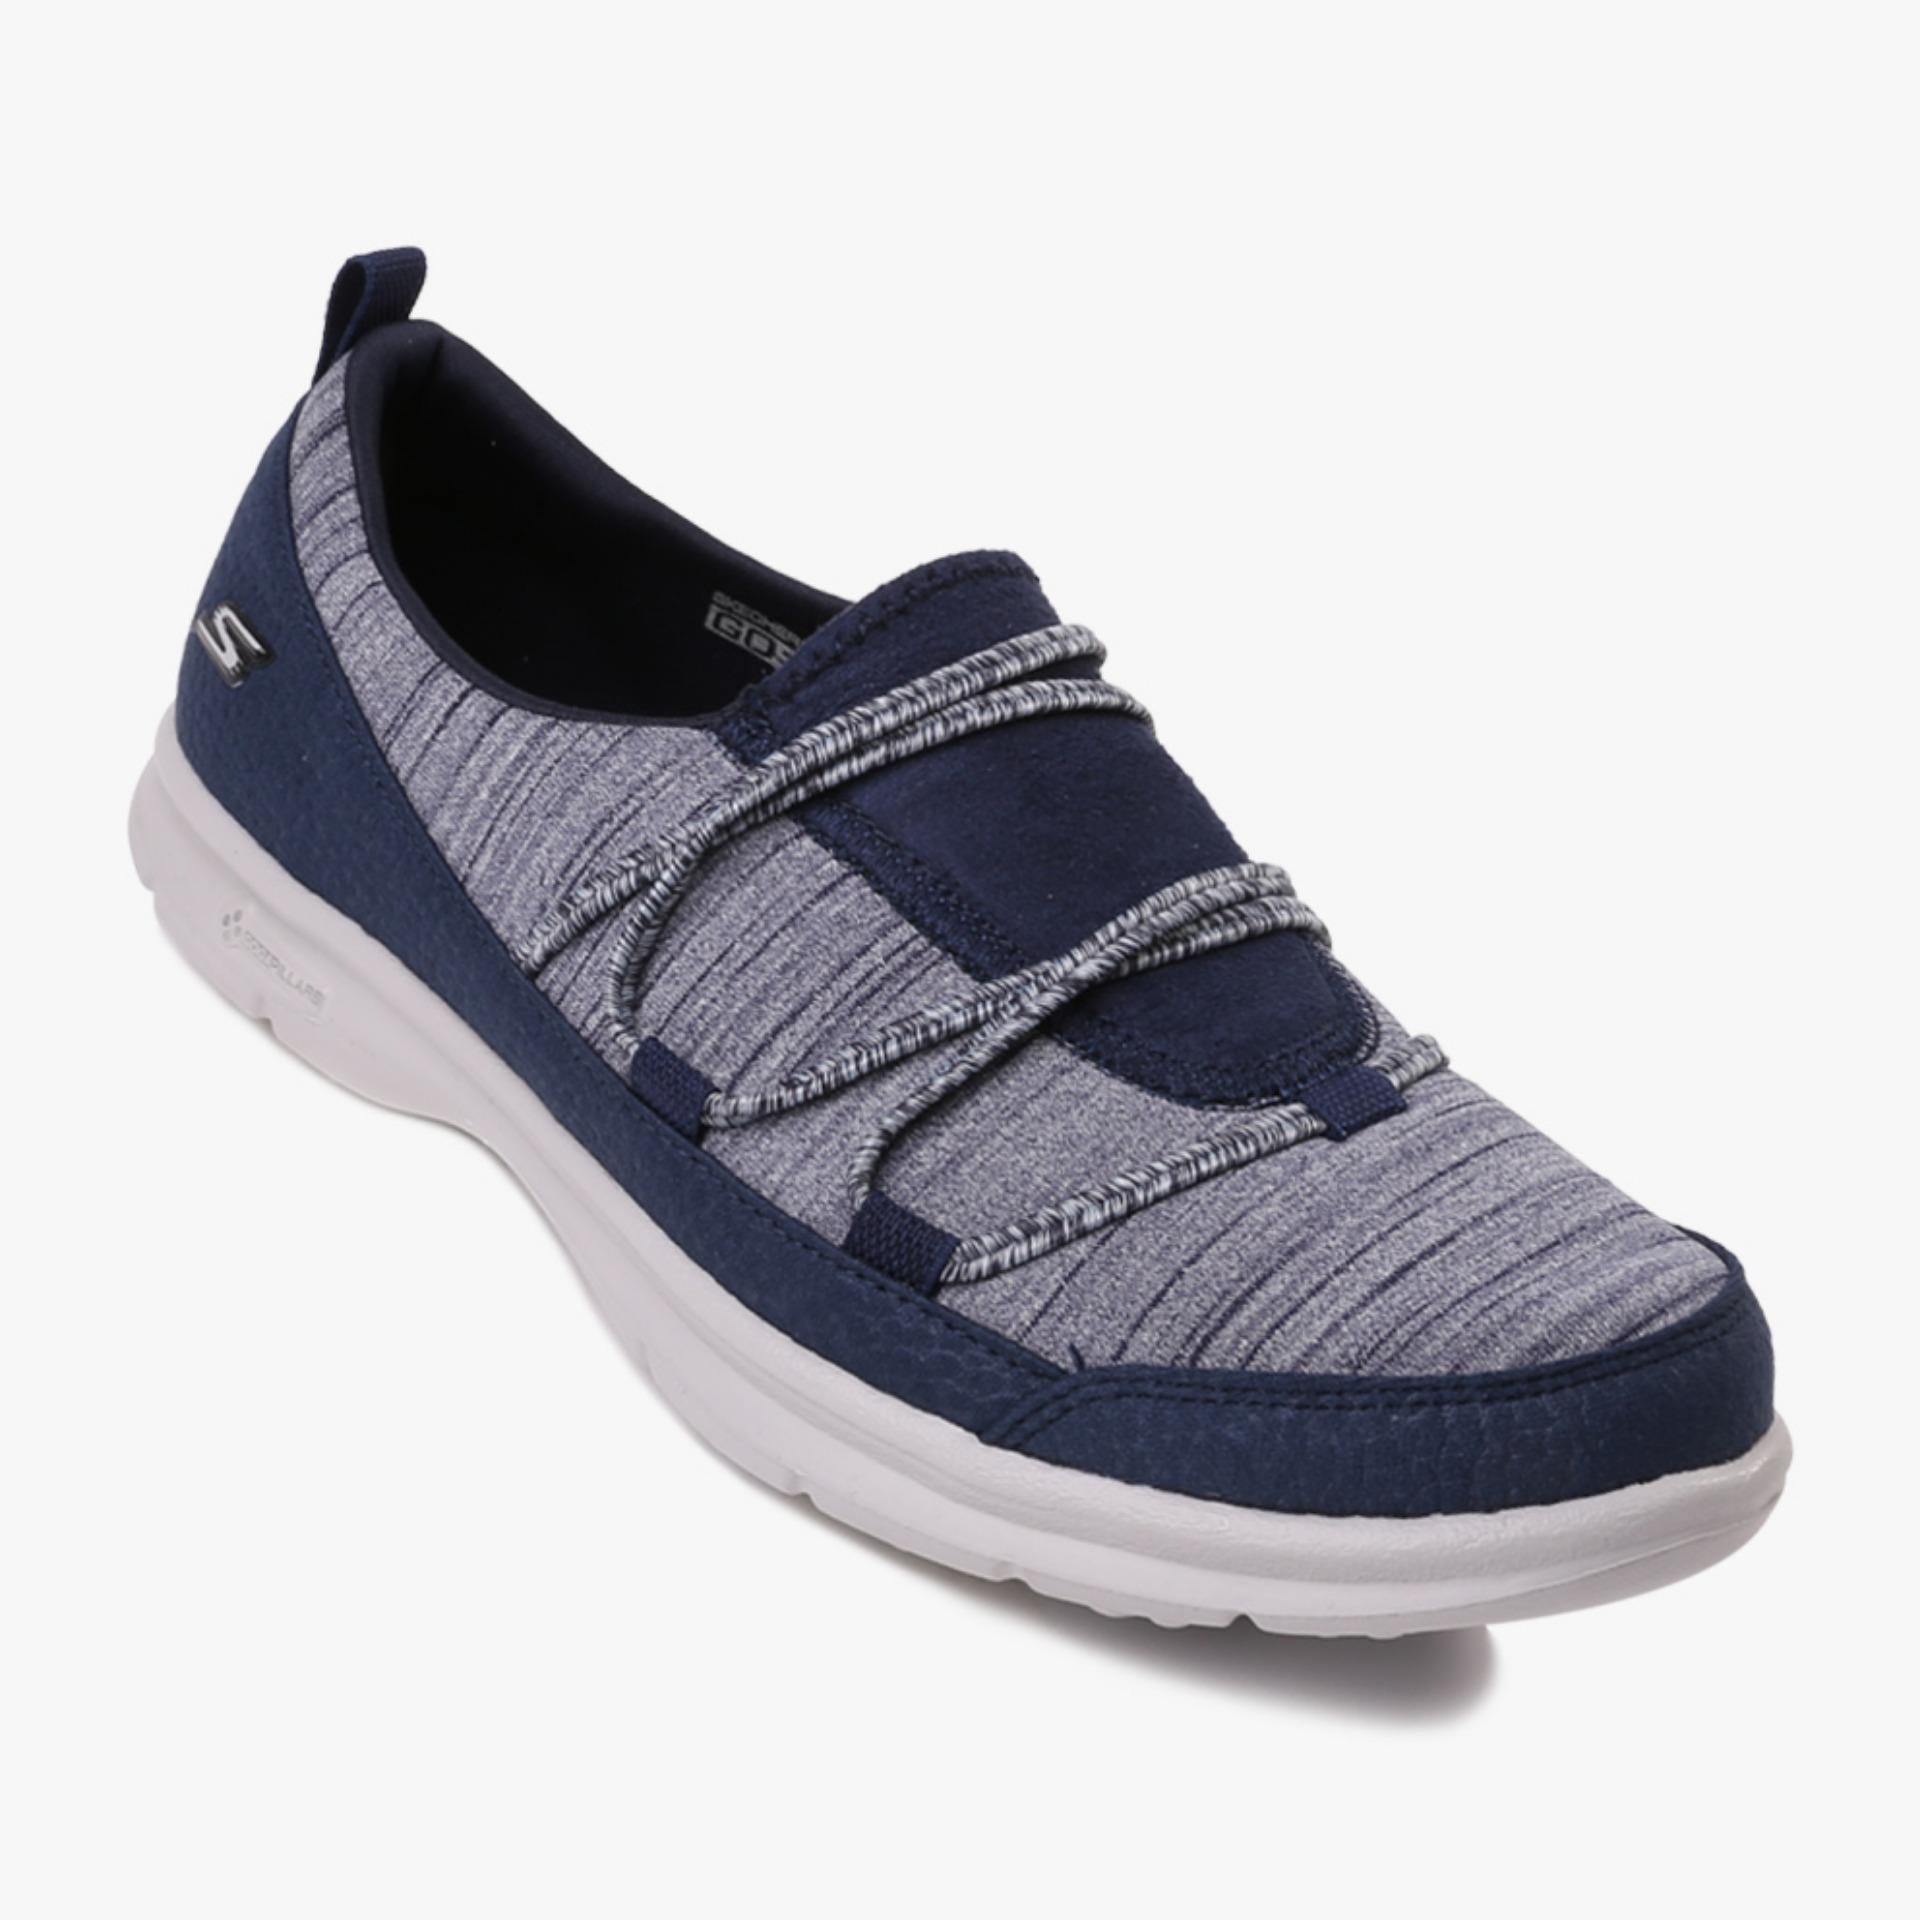 Harga Skechers Go Step Sway Women S Sneakers Navy Murah